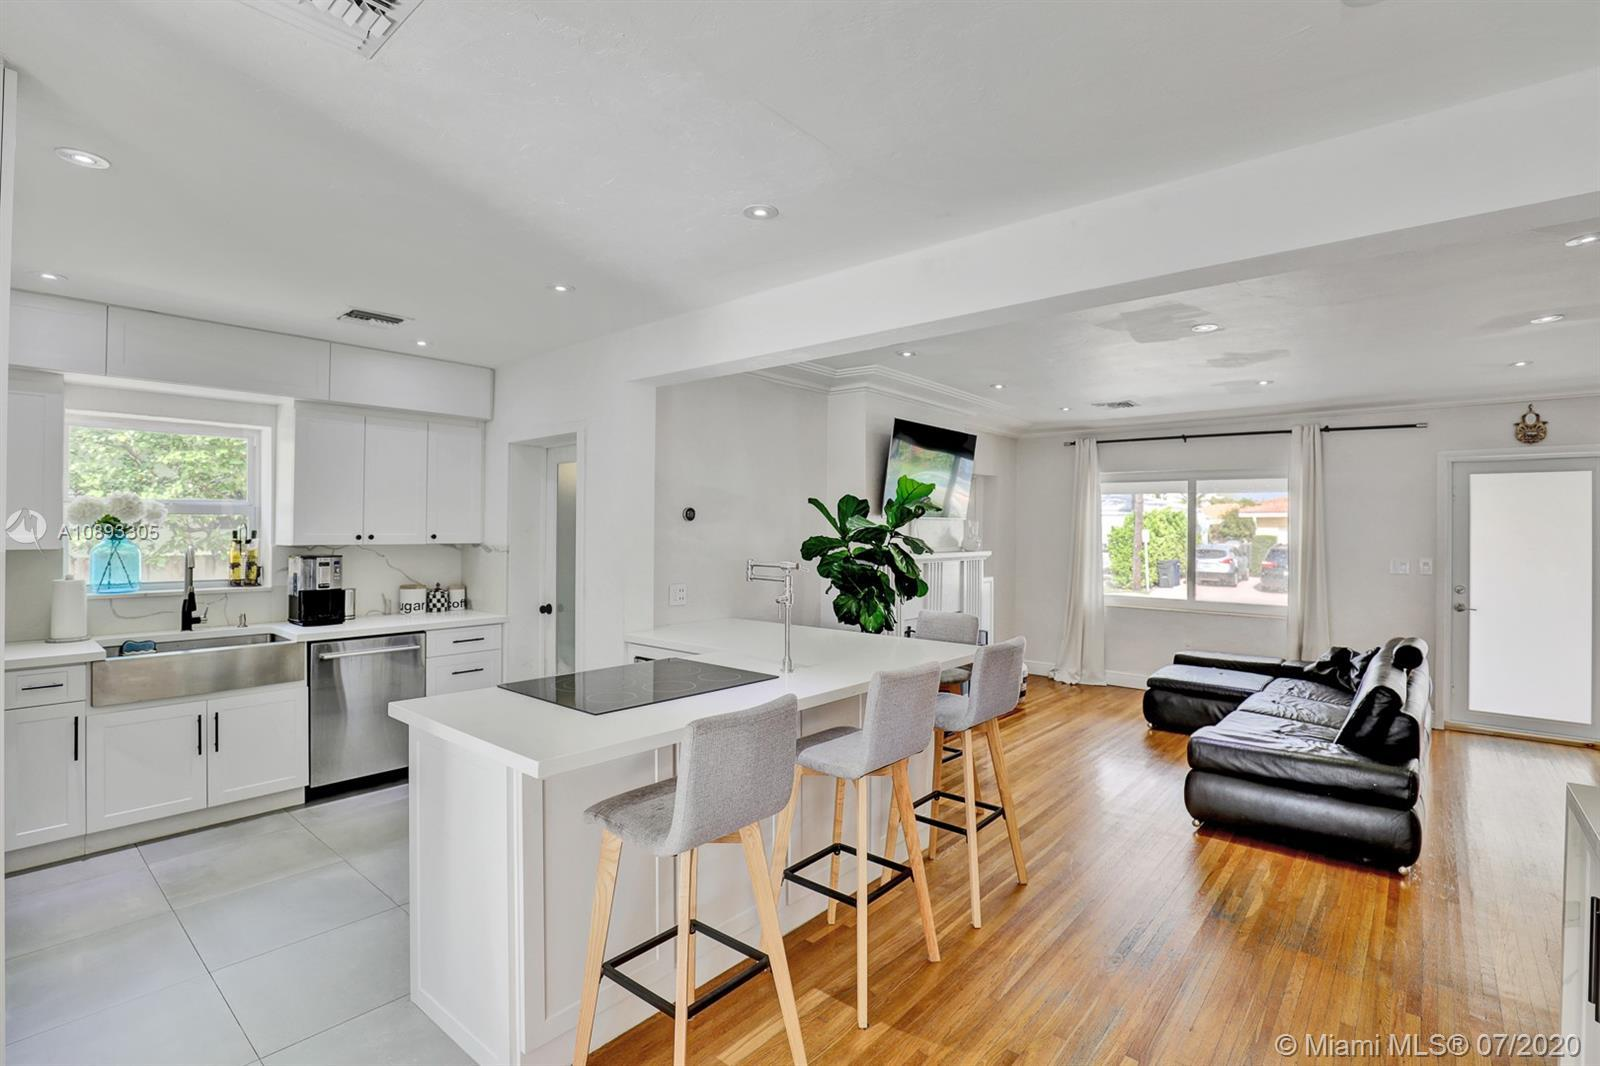 Fully remodeled home. Walking Distance to Bal Harbor Shops, Town restaurants, Stores, House of Worsh